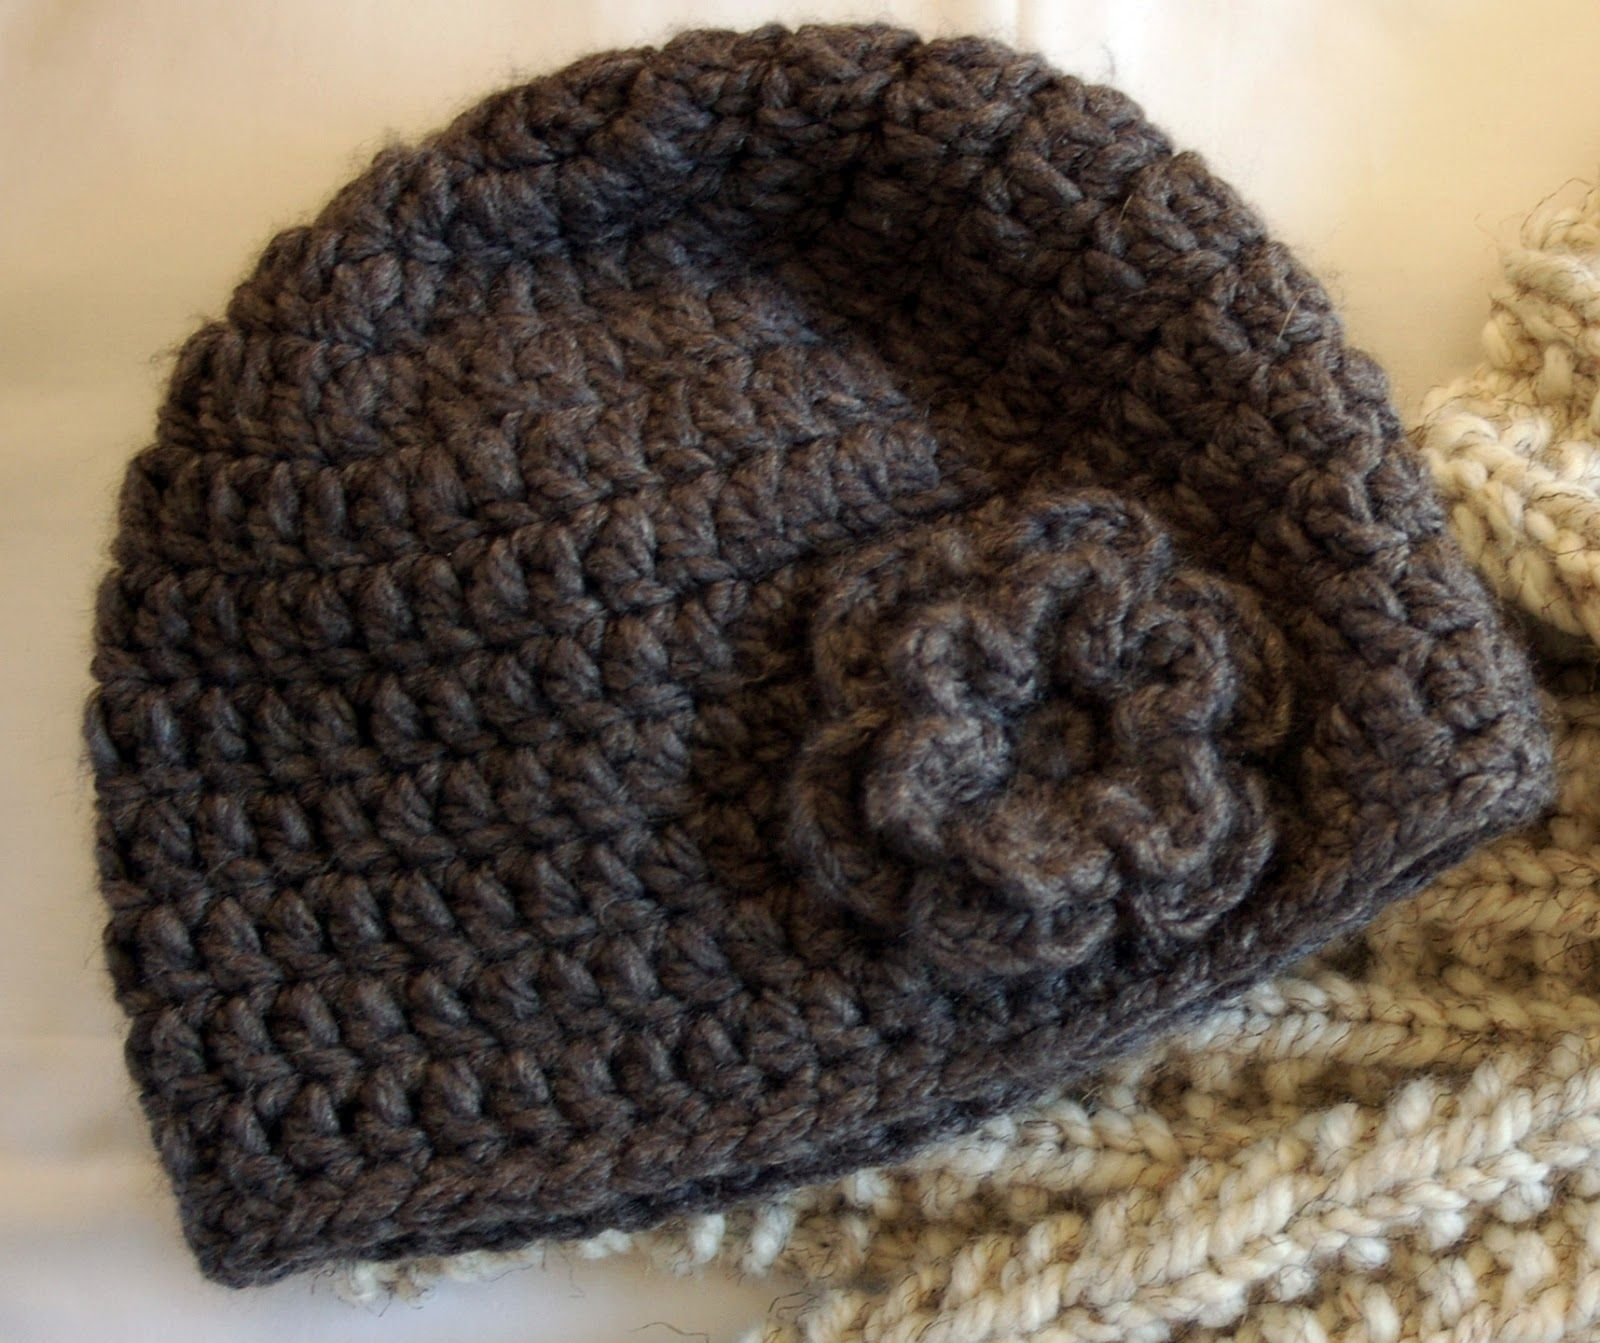 Crocheting the day away tutorials and free patternscluding easy peasy womans winter hat pattern crochet hat with bulky yarn gauge given bankloansurffo Images